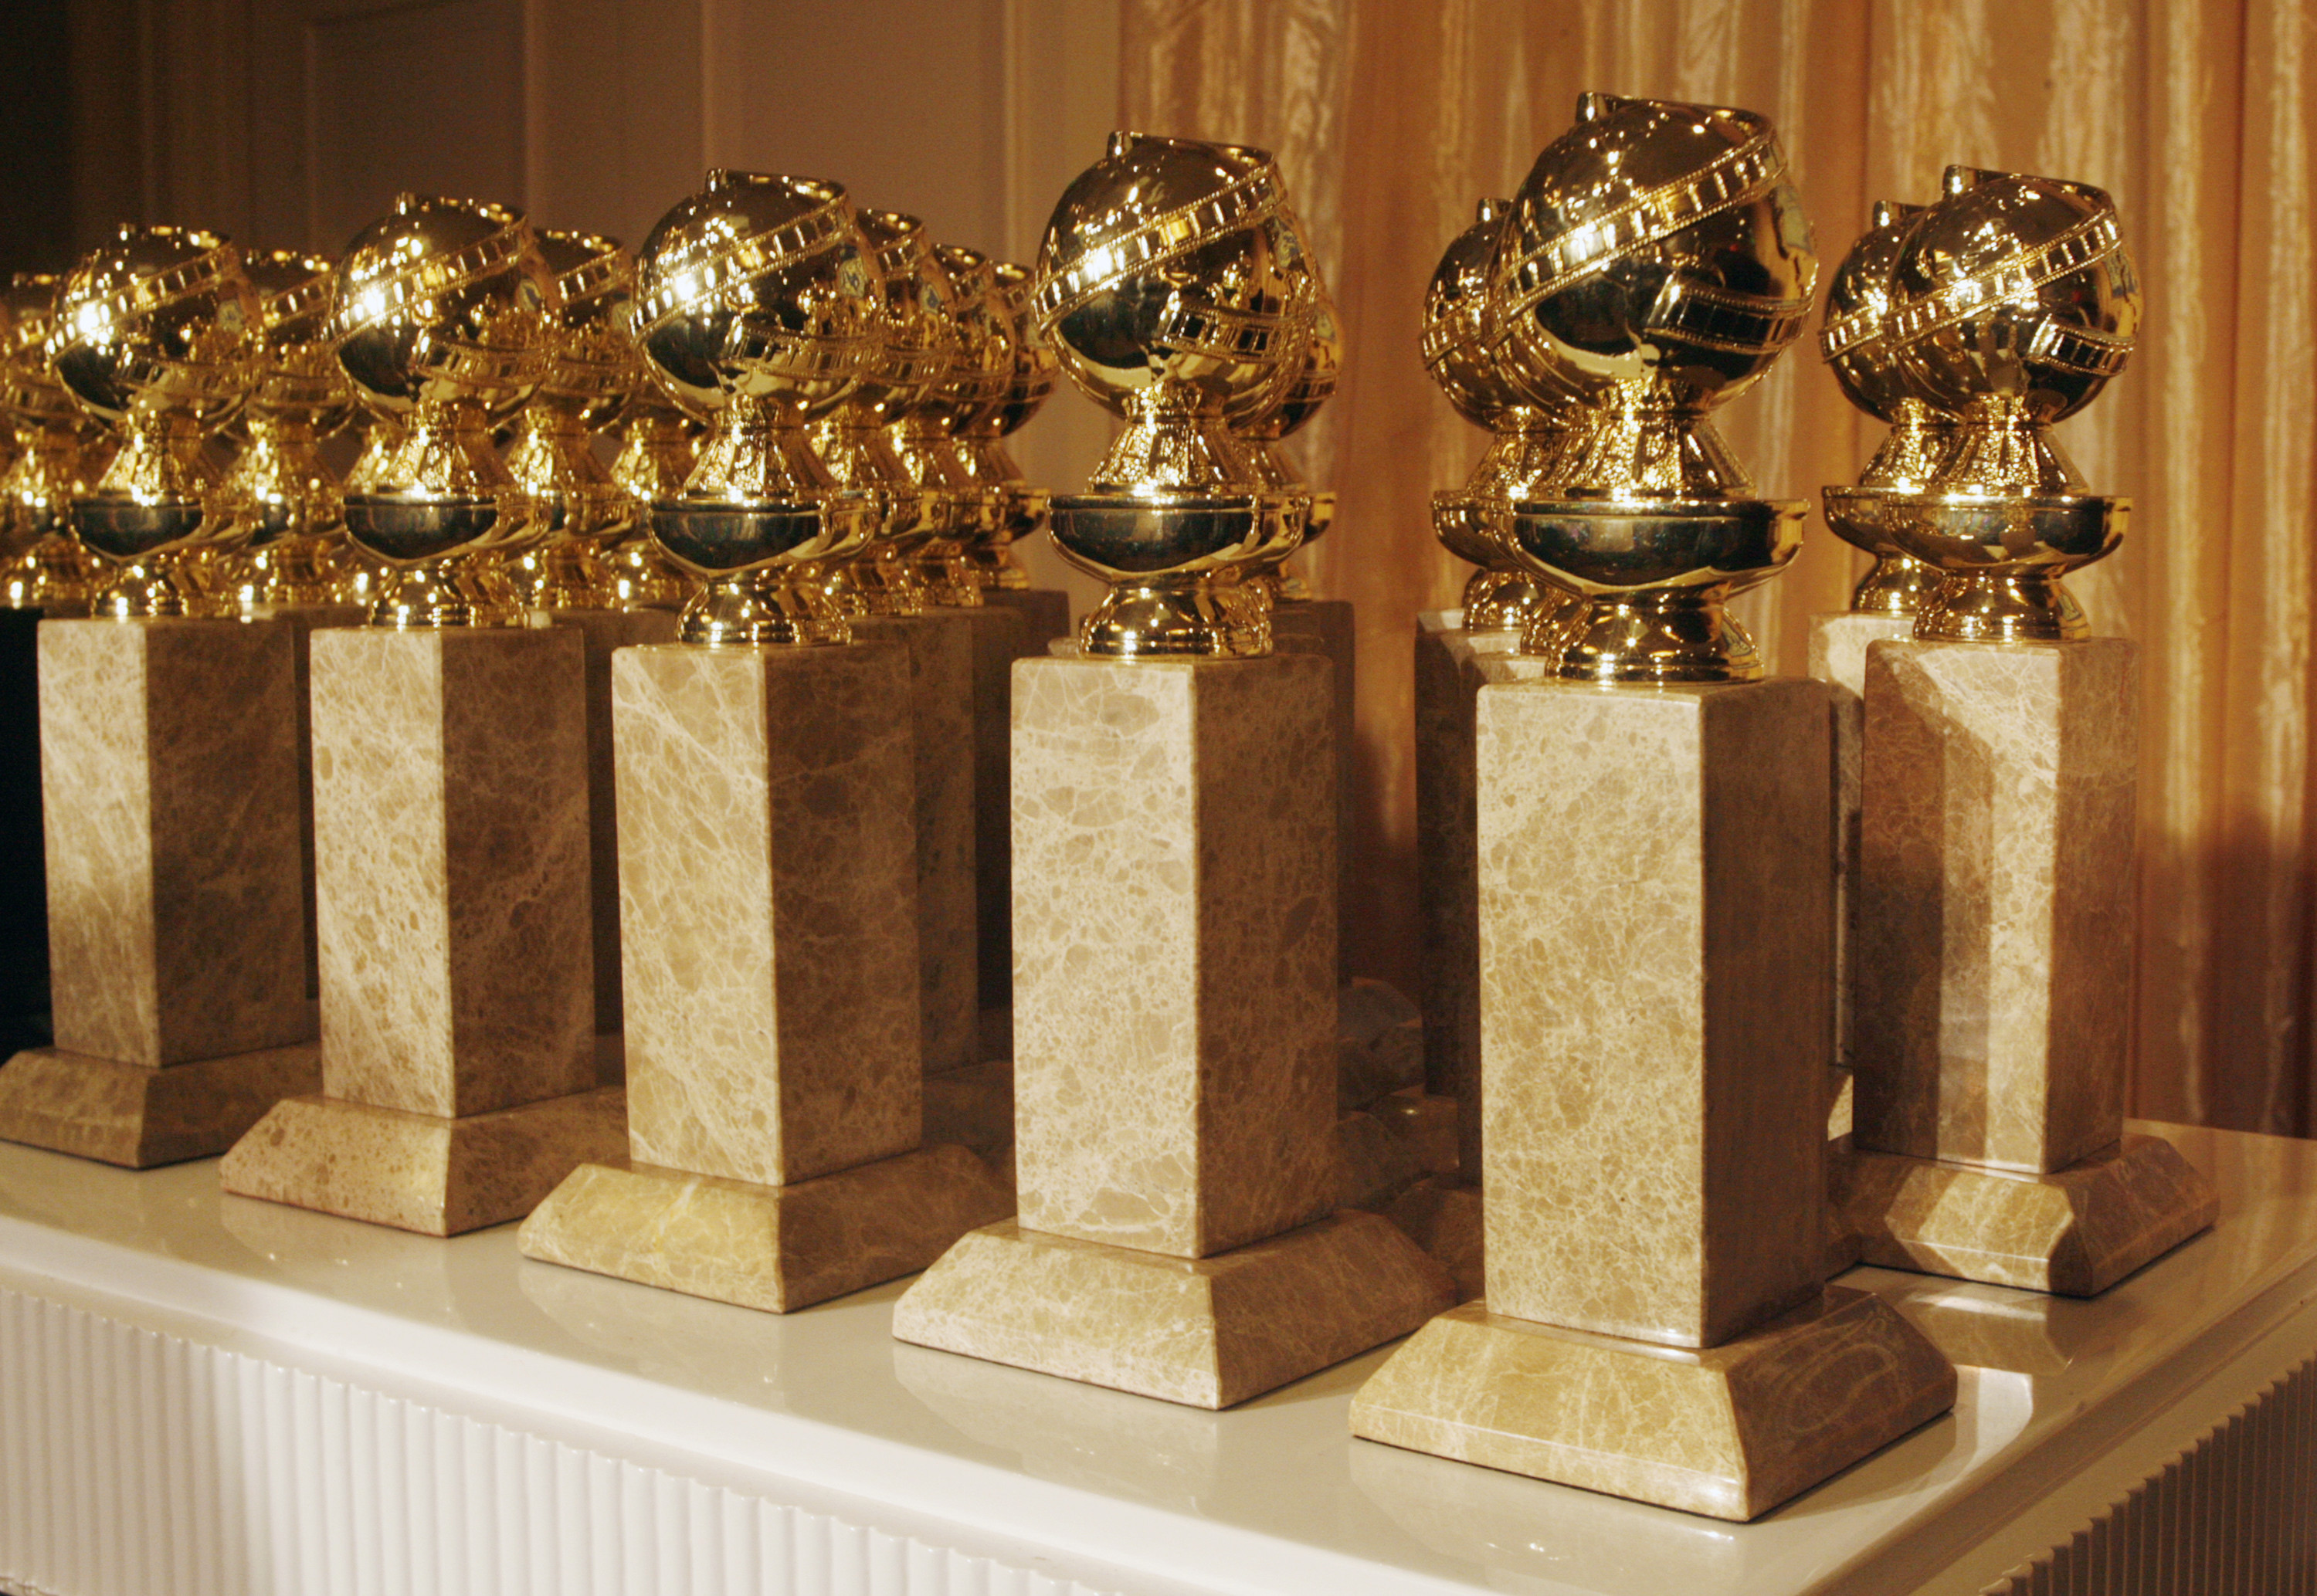 The Hollywood Foreign Press Association's new Golden Globe statuettes are shown during a news conference in Beverly Hills, California January 6, 2009. The new statuette features a facelift to the metal top and a new marble type. The Golden Globe Awards will be held January 11 in Beverly Hills.REUTERS/Fred Prouser (UNITED STATES) - GM1E5170A9601